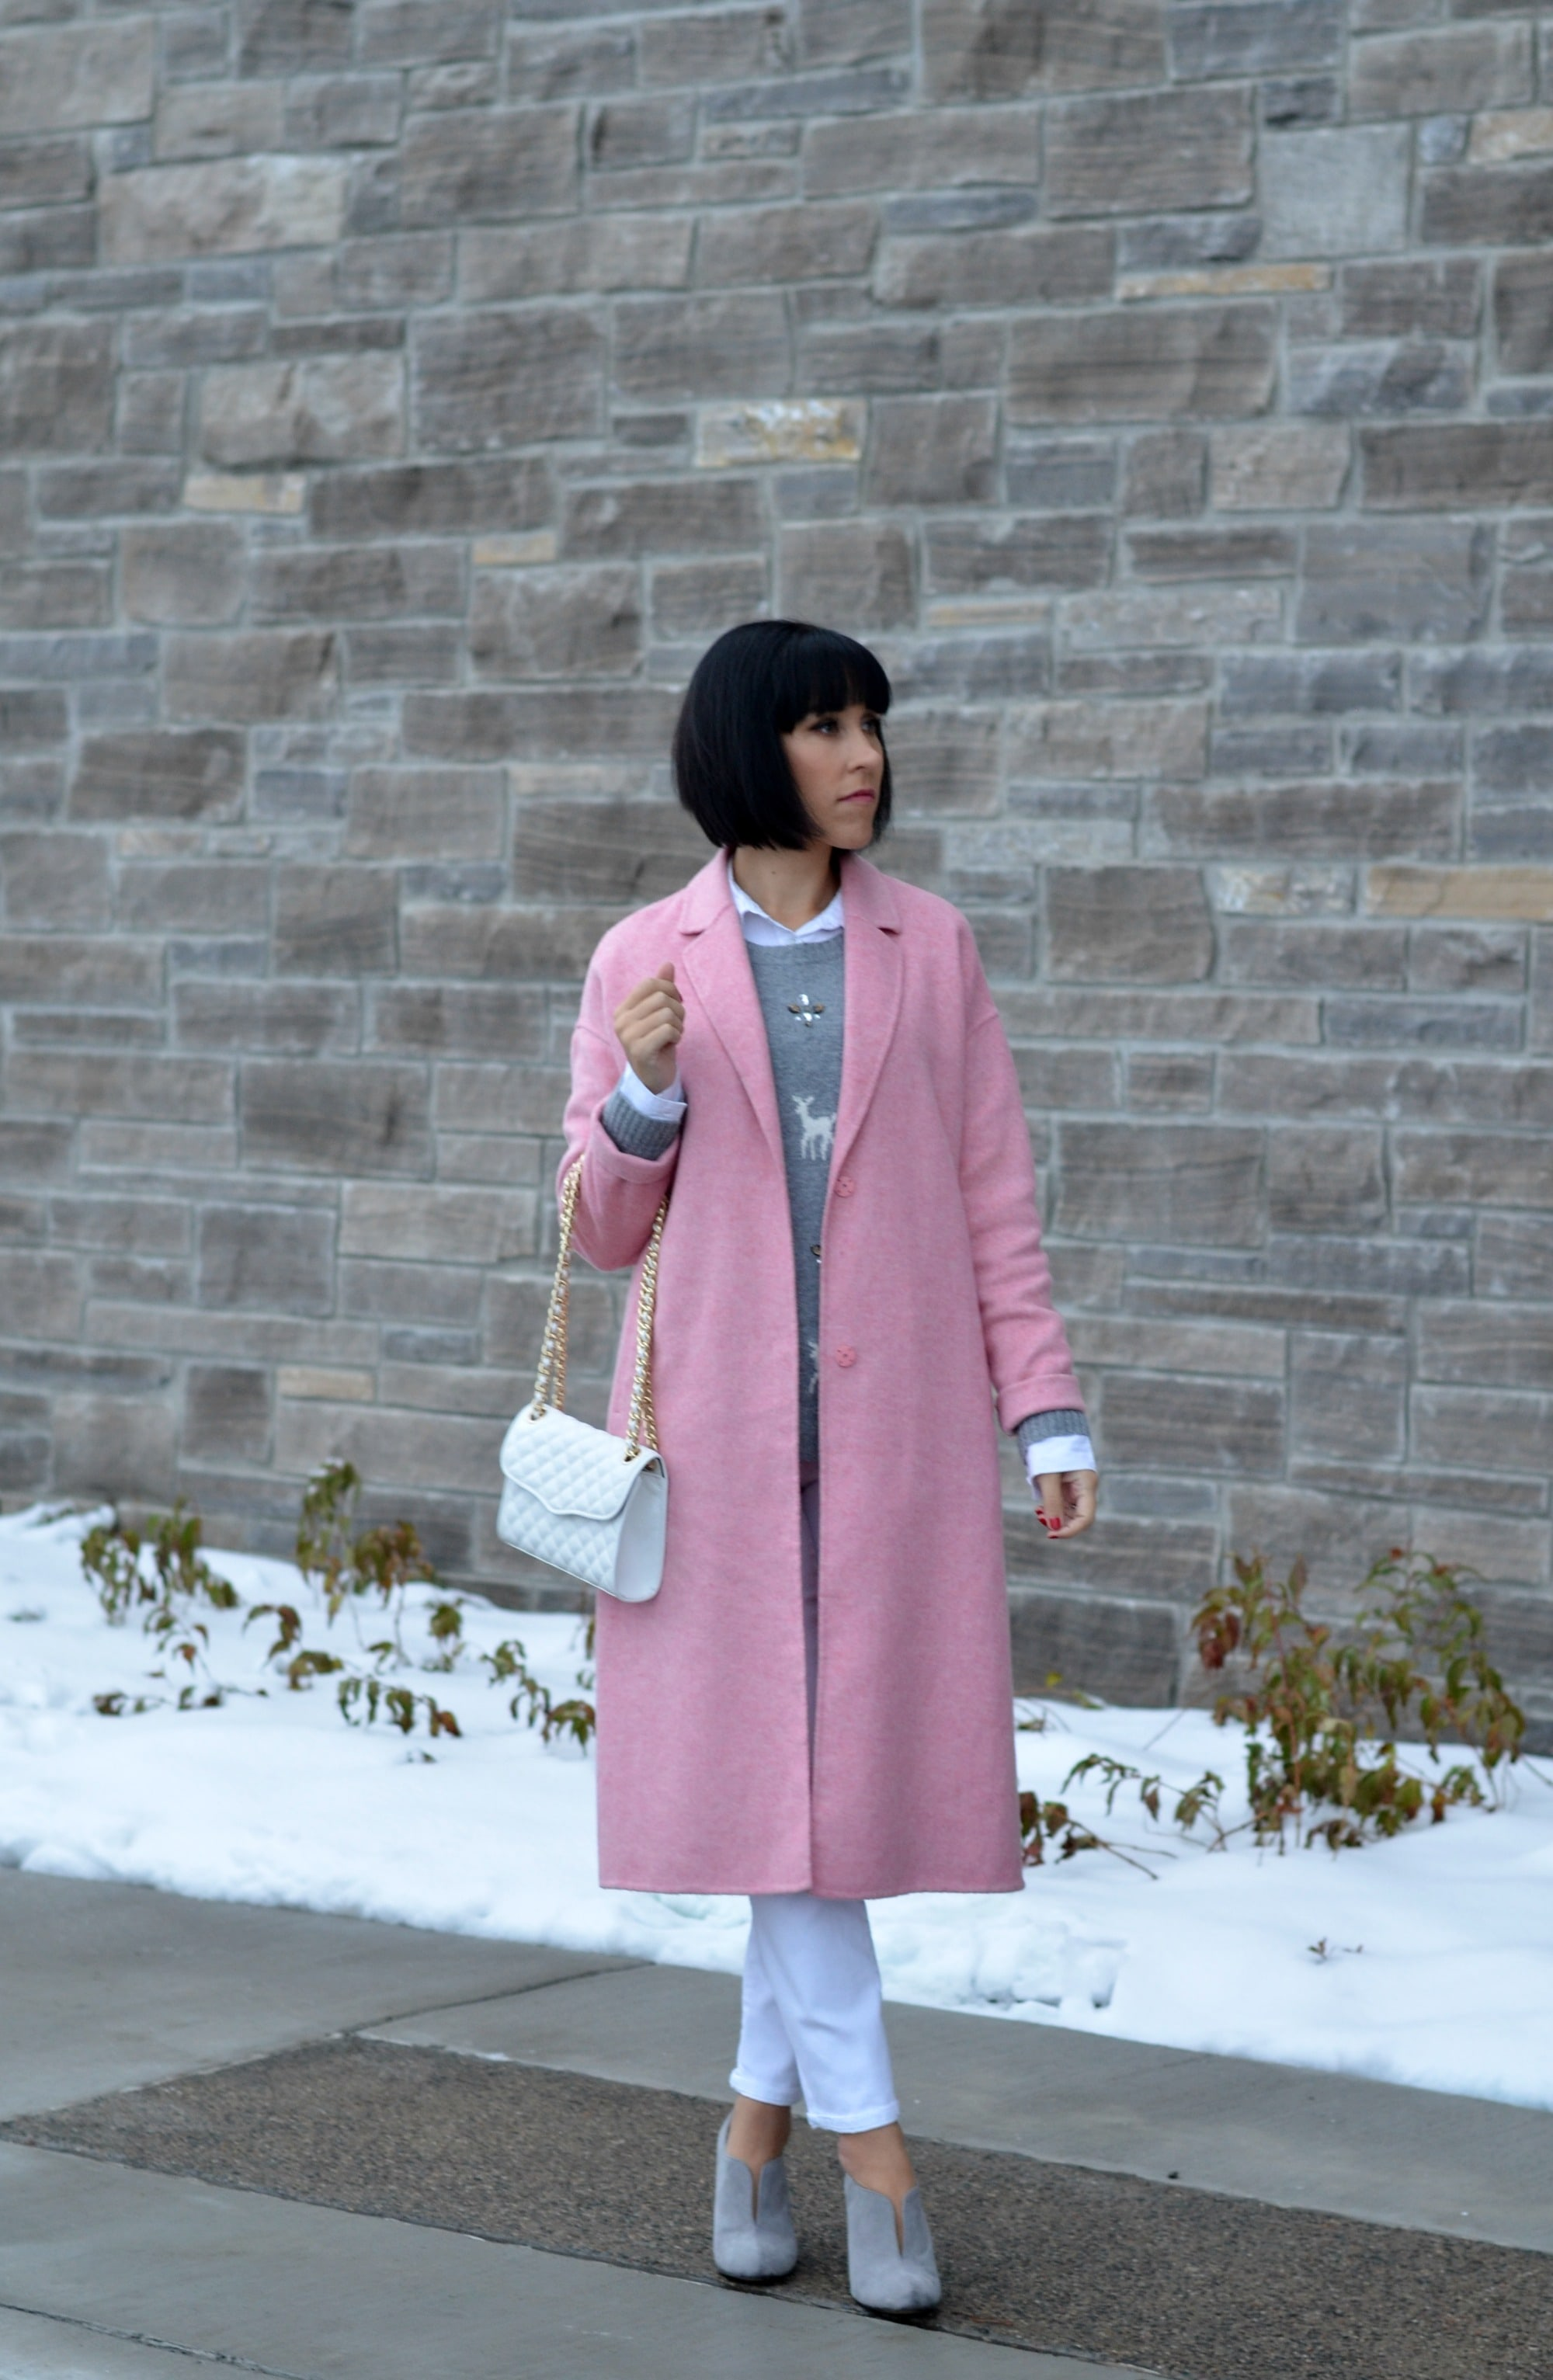 pink coat in winter